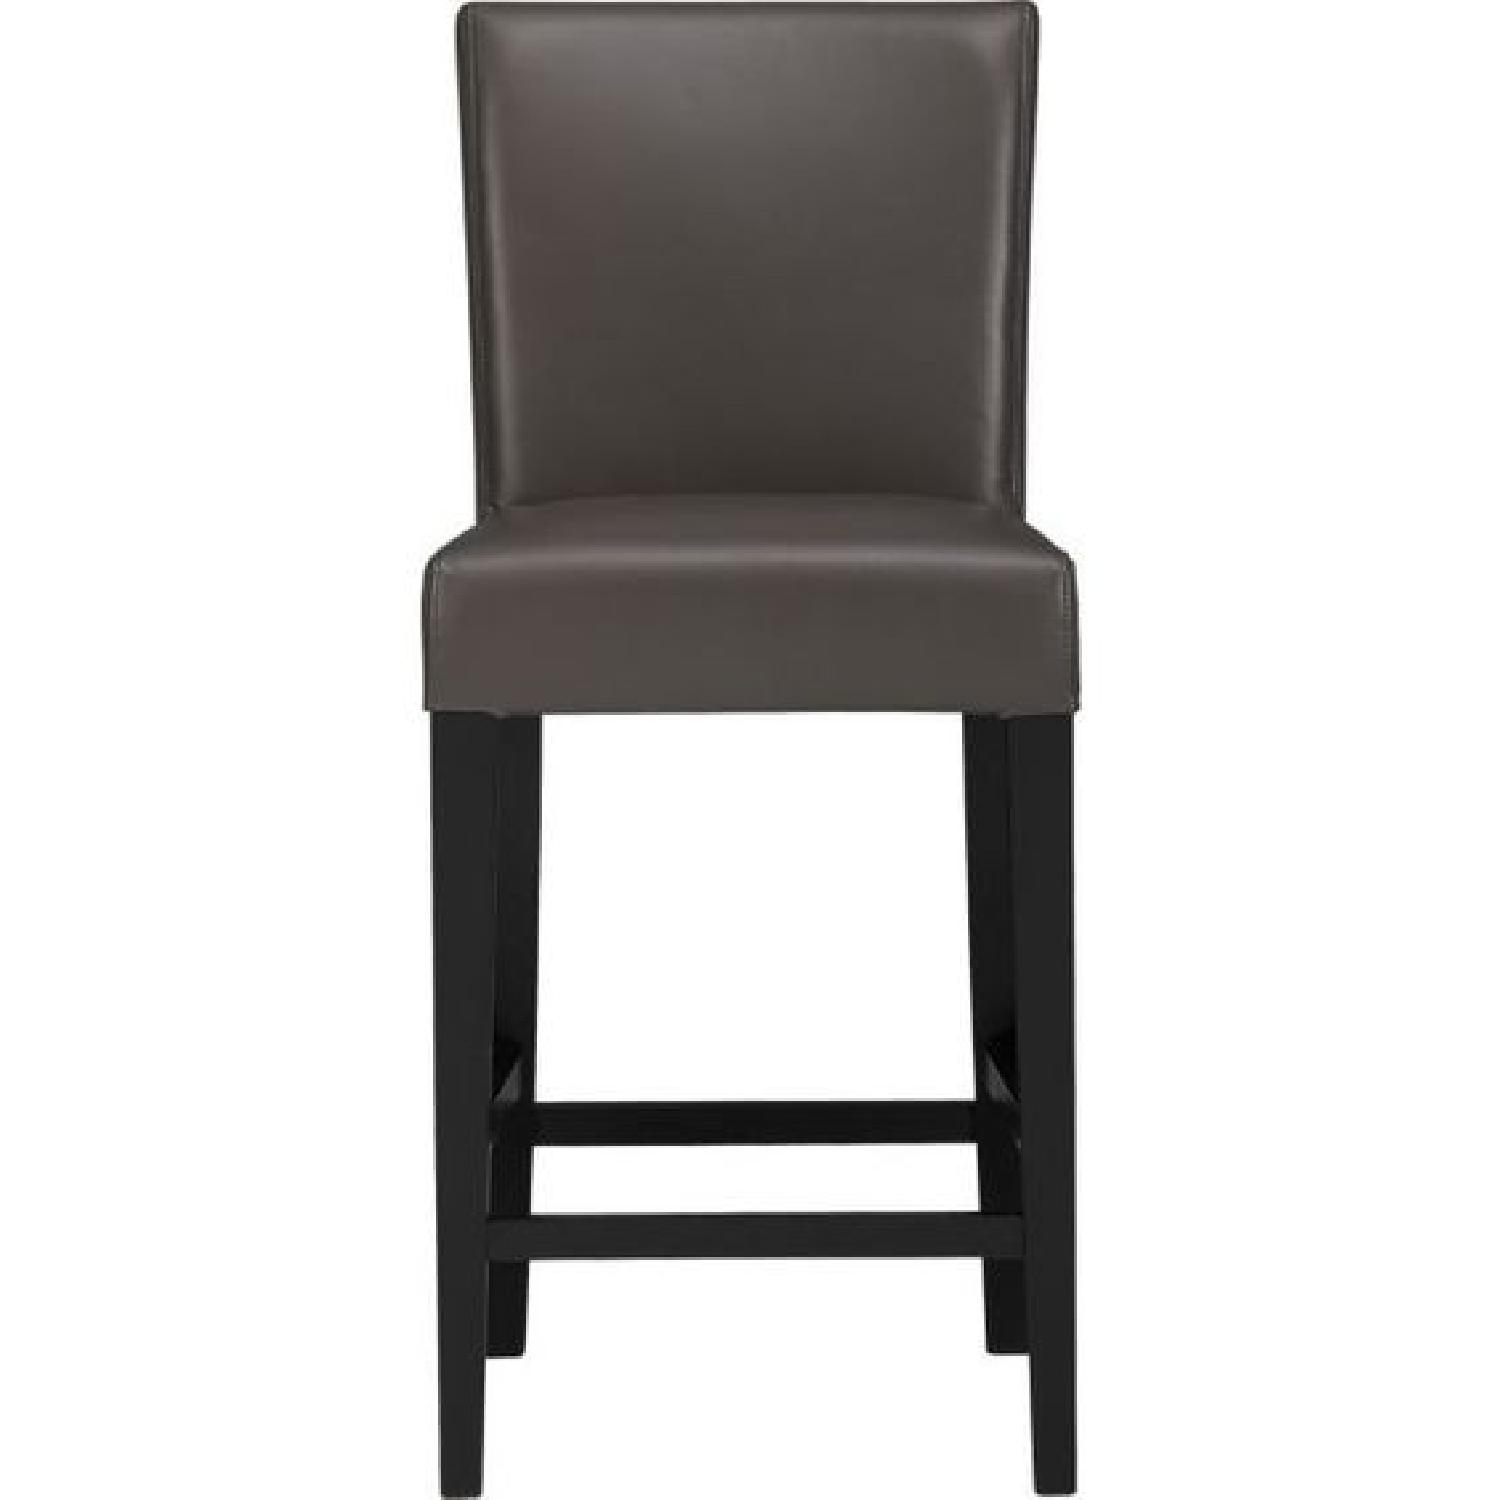 Crate & Barrel Lowe Counter Stool